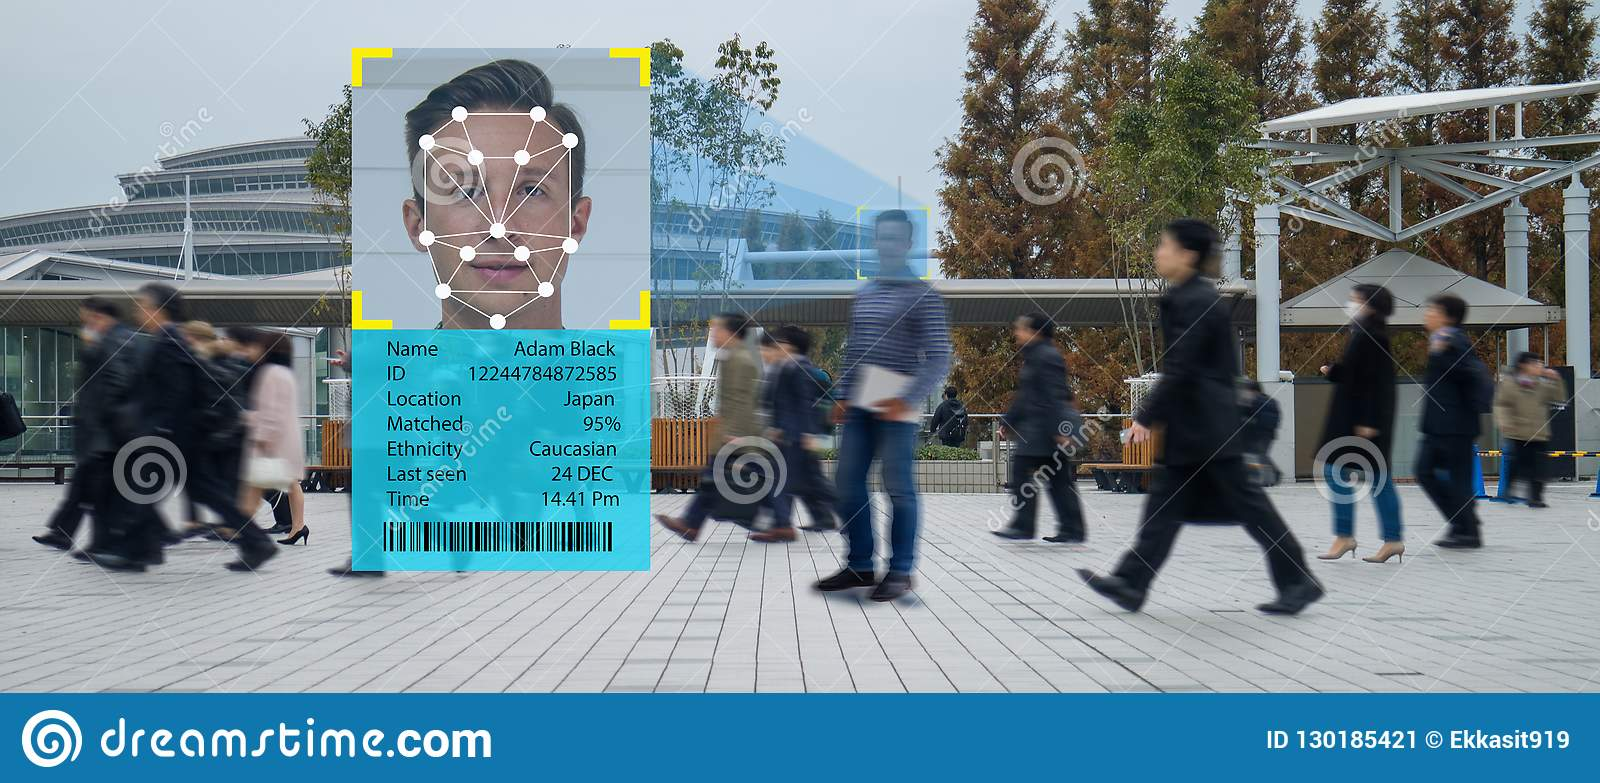 Iot machine learning with human and object recognition which use artificial intelligence to measurements ,analytic and identical c